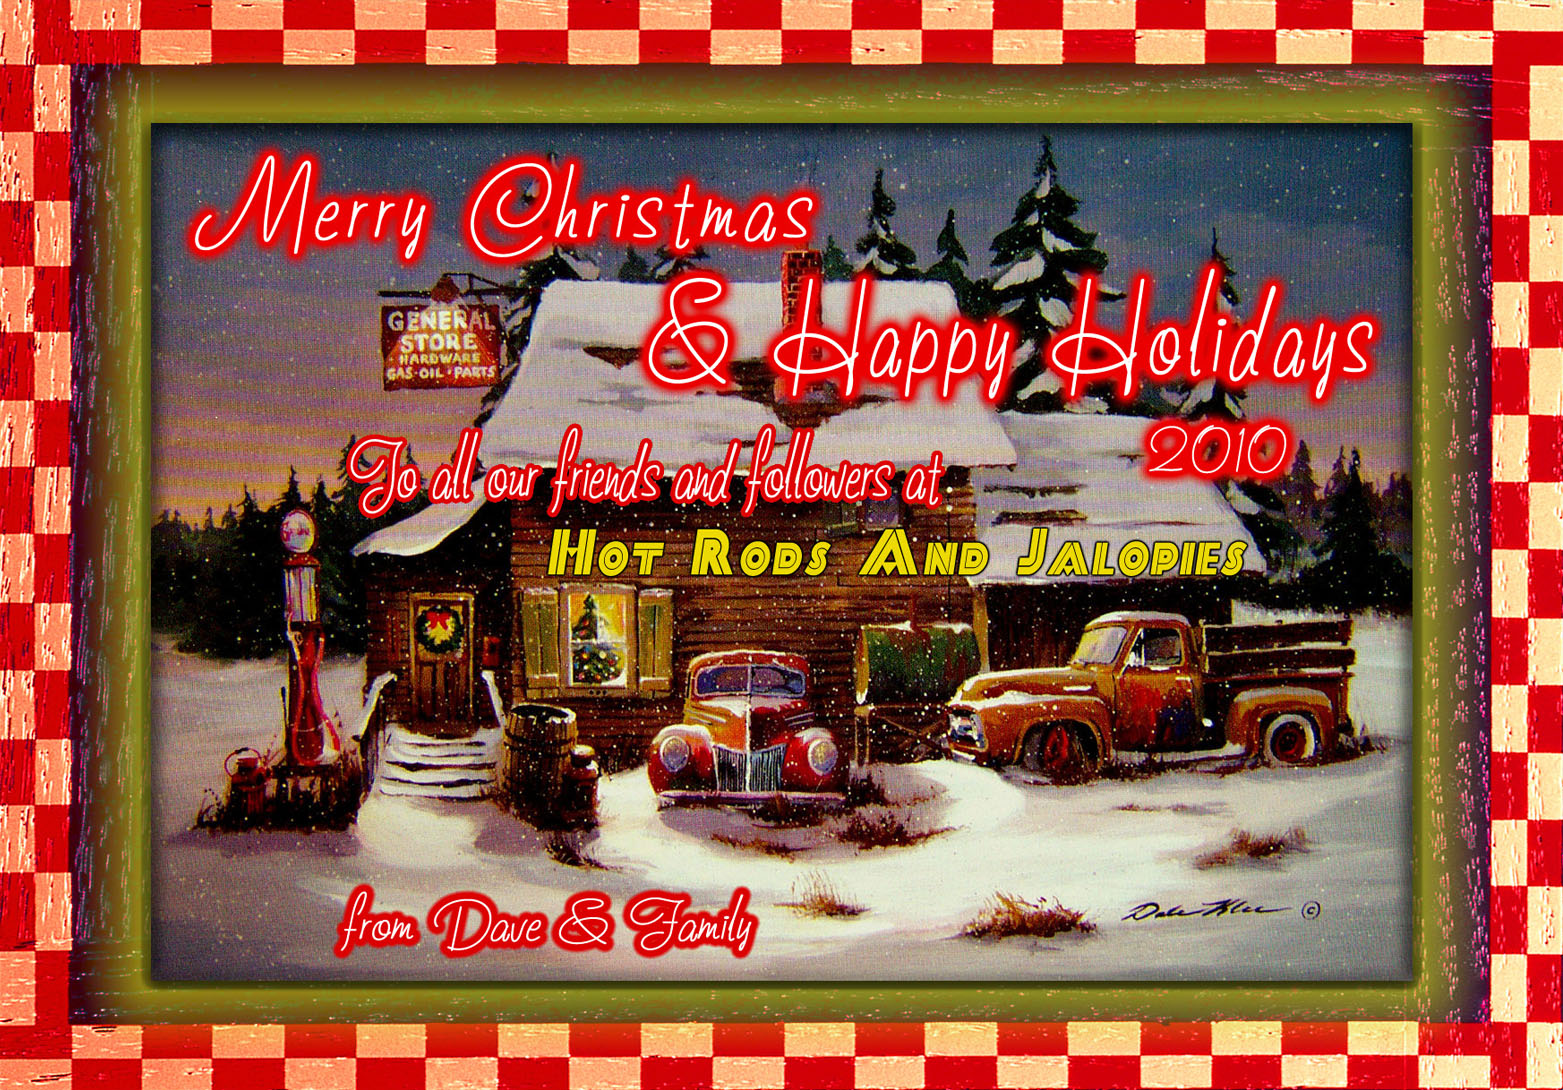 Hot Rods And Jalopies Merry Christmas 2010d A Few More